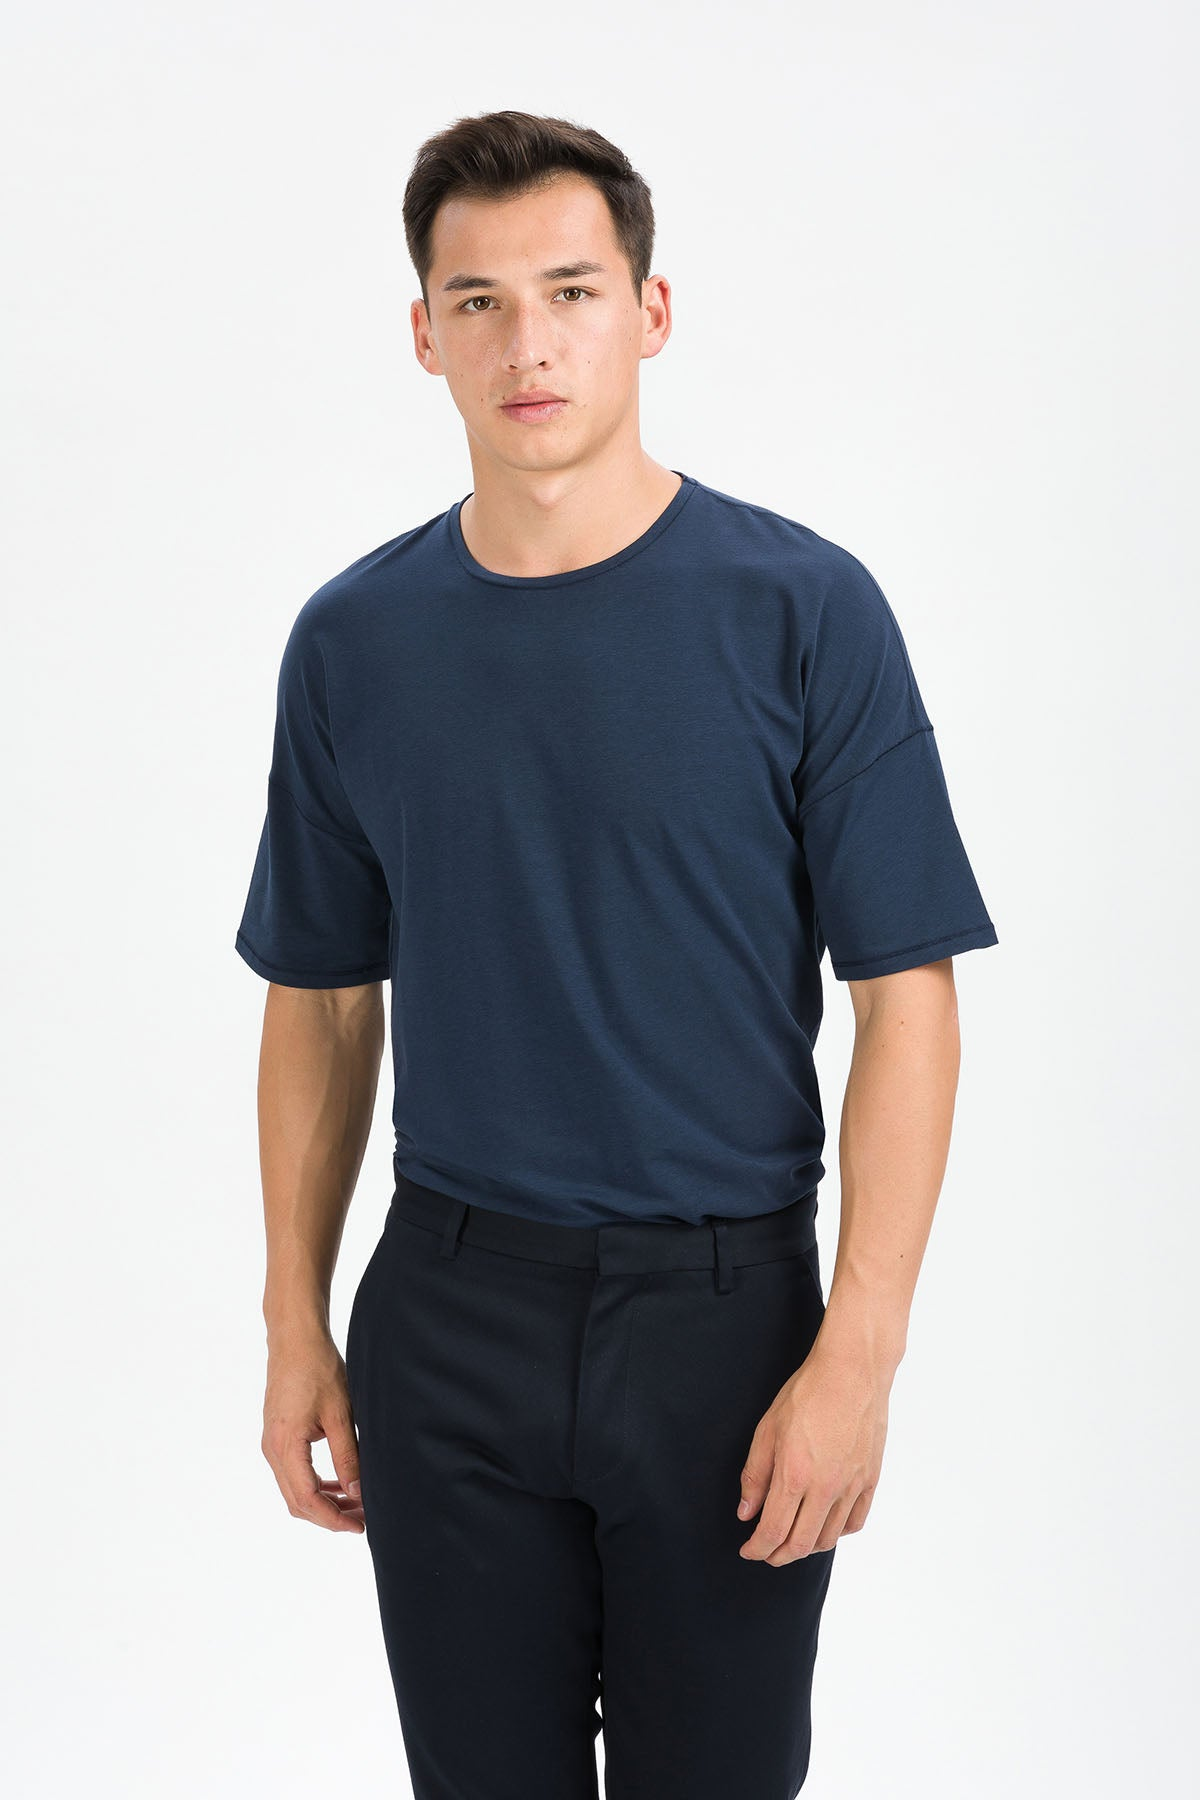 RECHARGER T-Shirt in SeaCell navy Passform relaxed vordere Ansicht